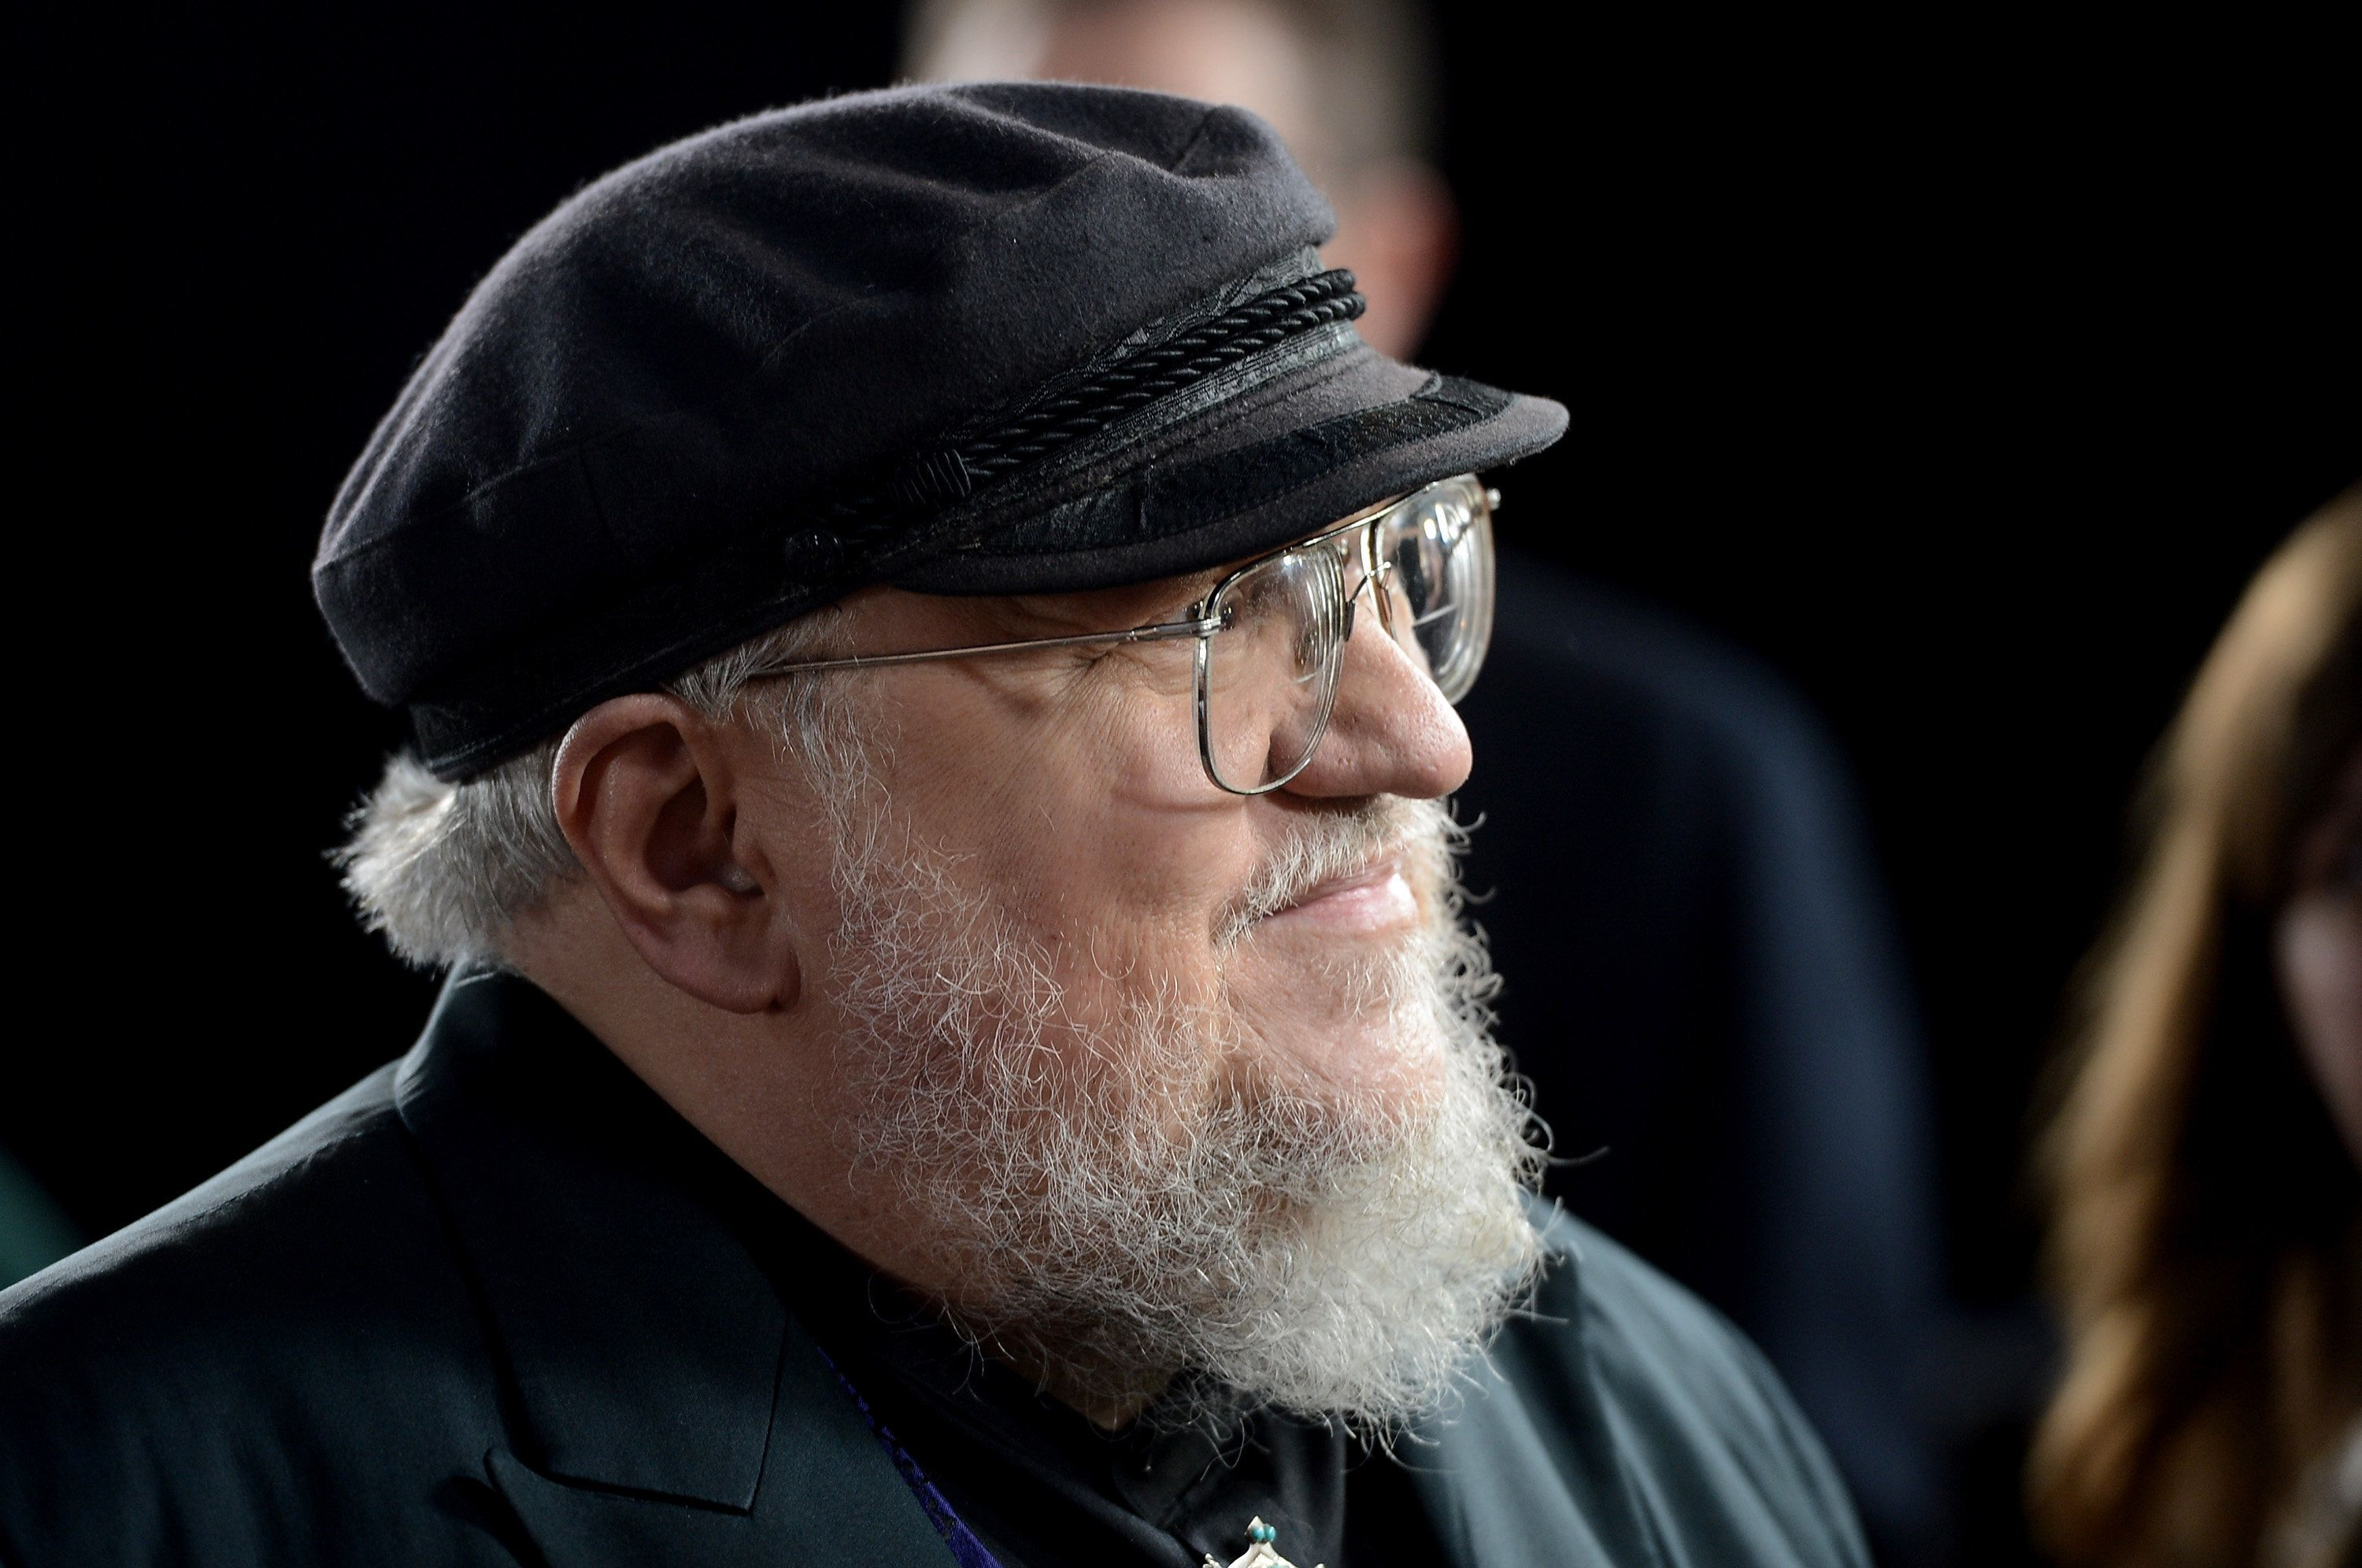 HOLLYWOOD, CA - MARCH 18:  Co-Executive Producer George R.R. Martin arrives at the premiere of HBO's 'Game Of Thrones' Season 3 at TCL Chinese Theatre on March 18, 2013 in Hollywood, California.  (Photo by Kevin Winter/Getty Images)